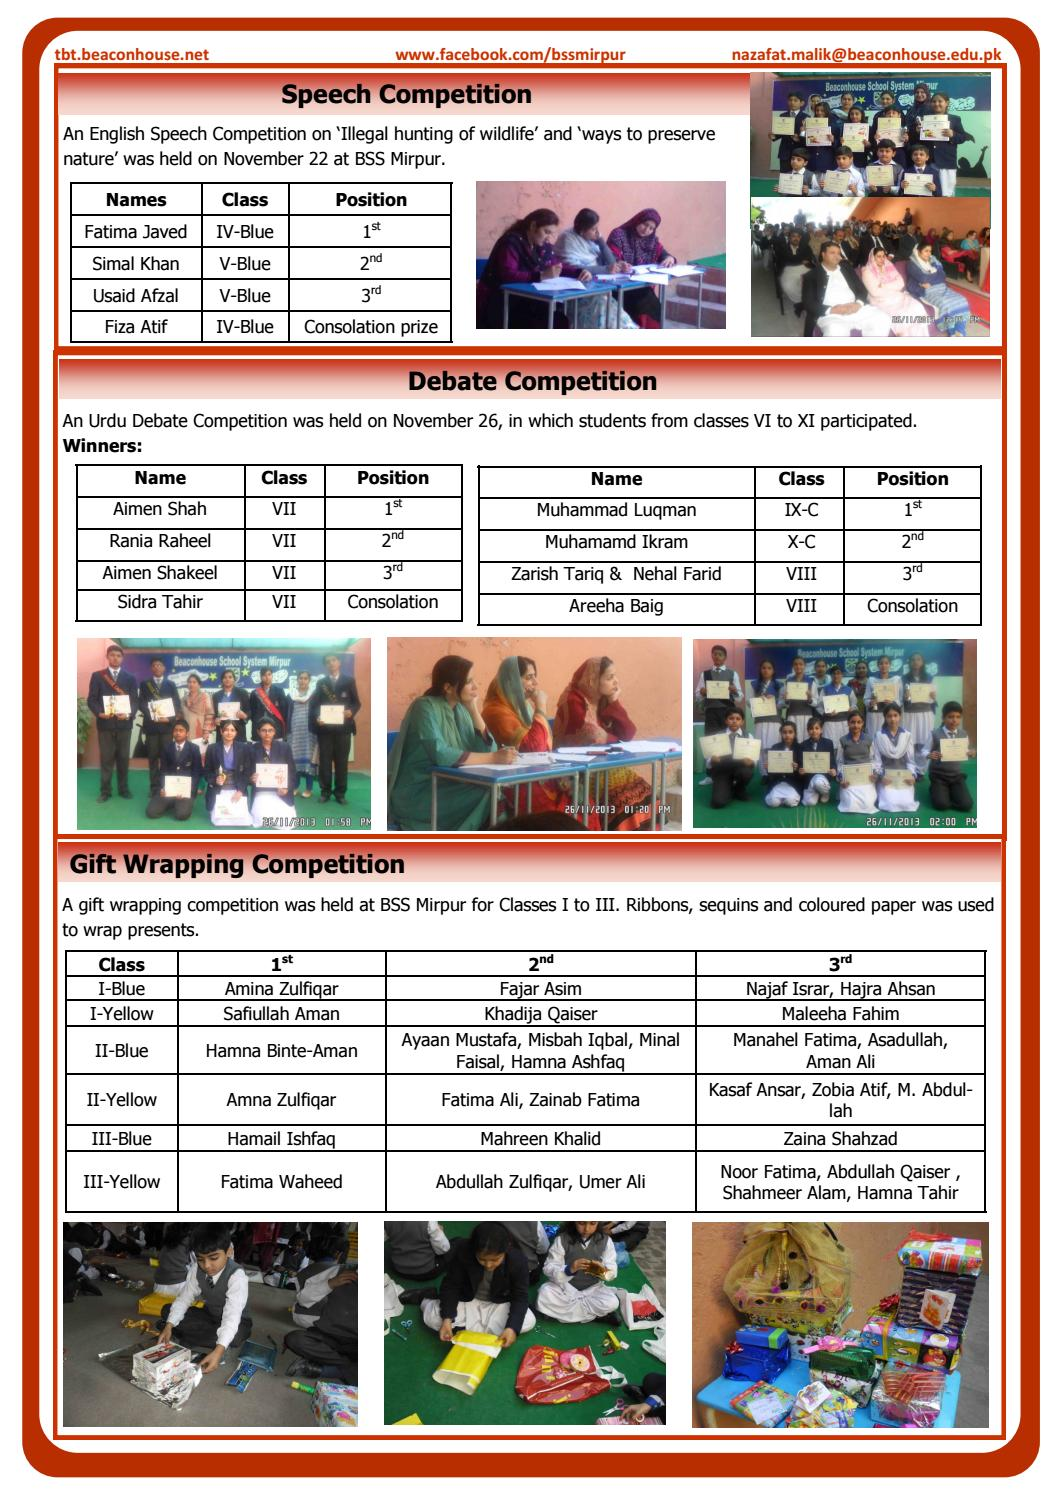 Newsletter 1st Term 2013-14 by Beaconhouse - issuu